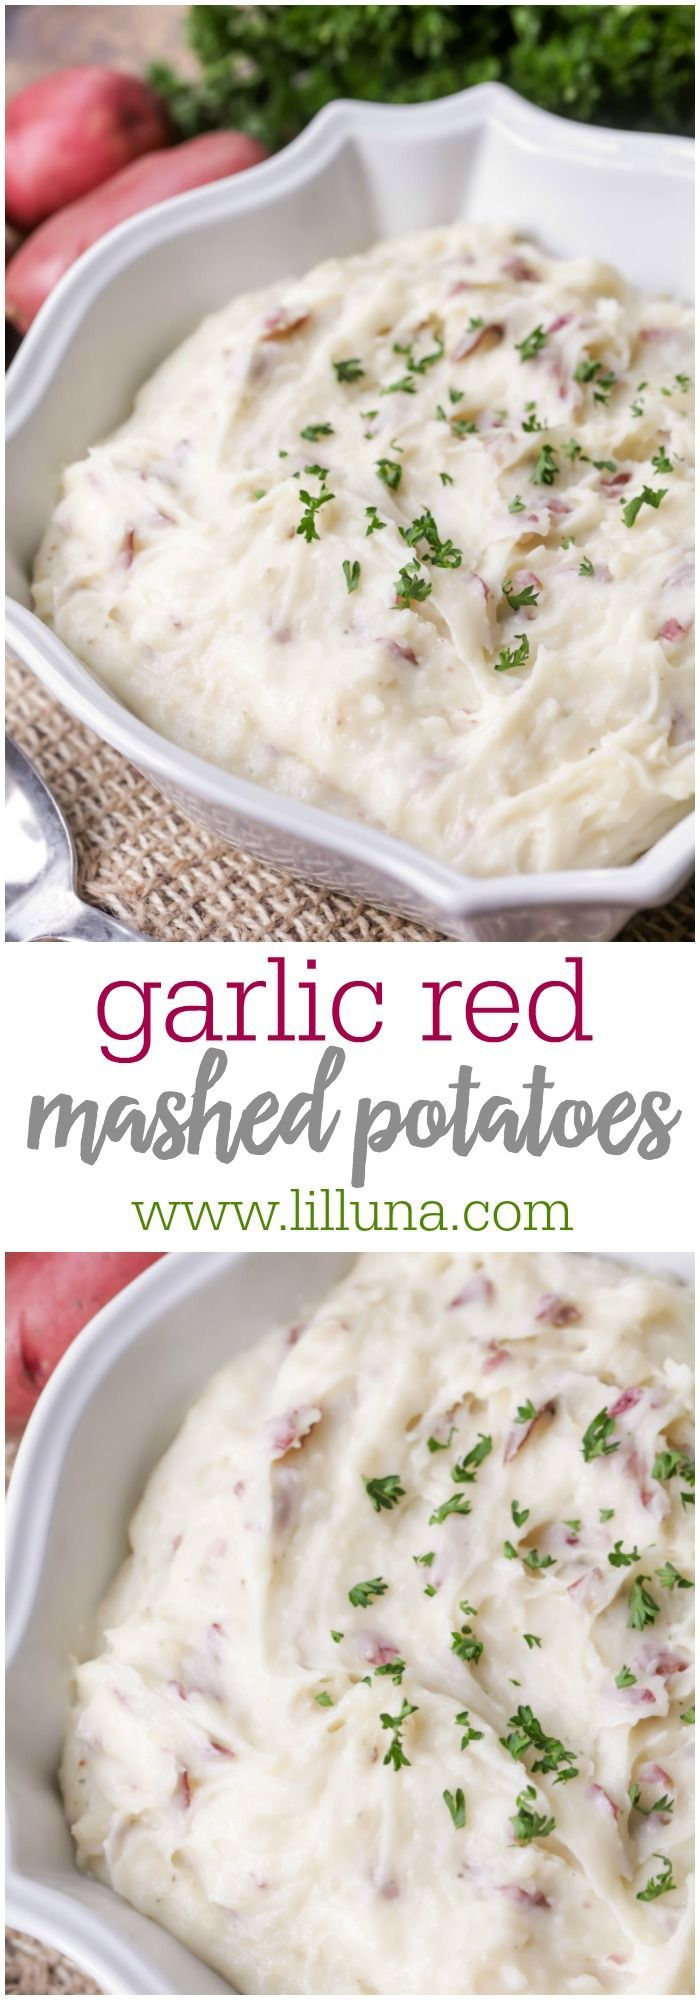 Garlic Red Mashed Potatoes - creamy, flavorful potatoes perfect as a side dish with any meal!